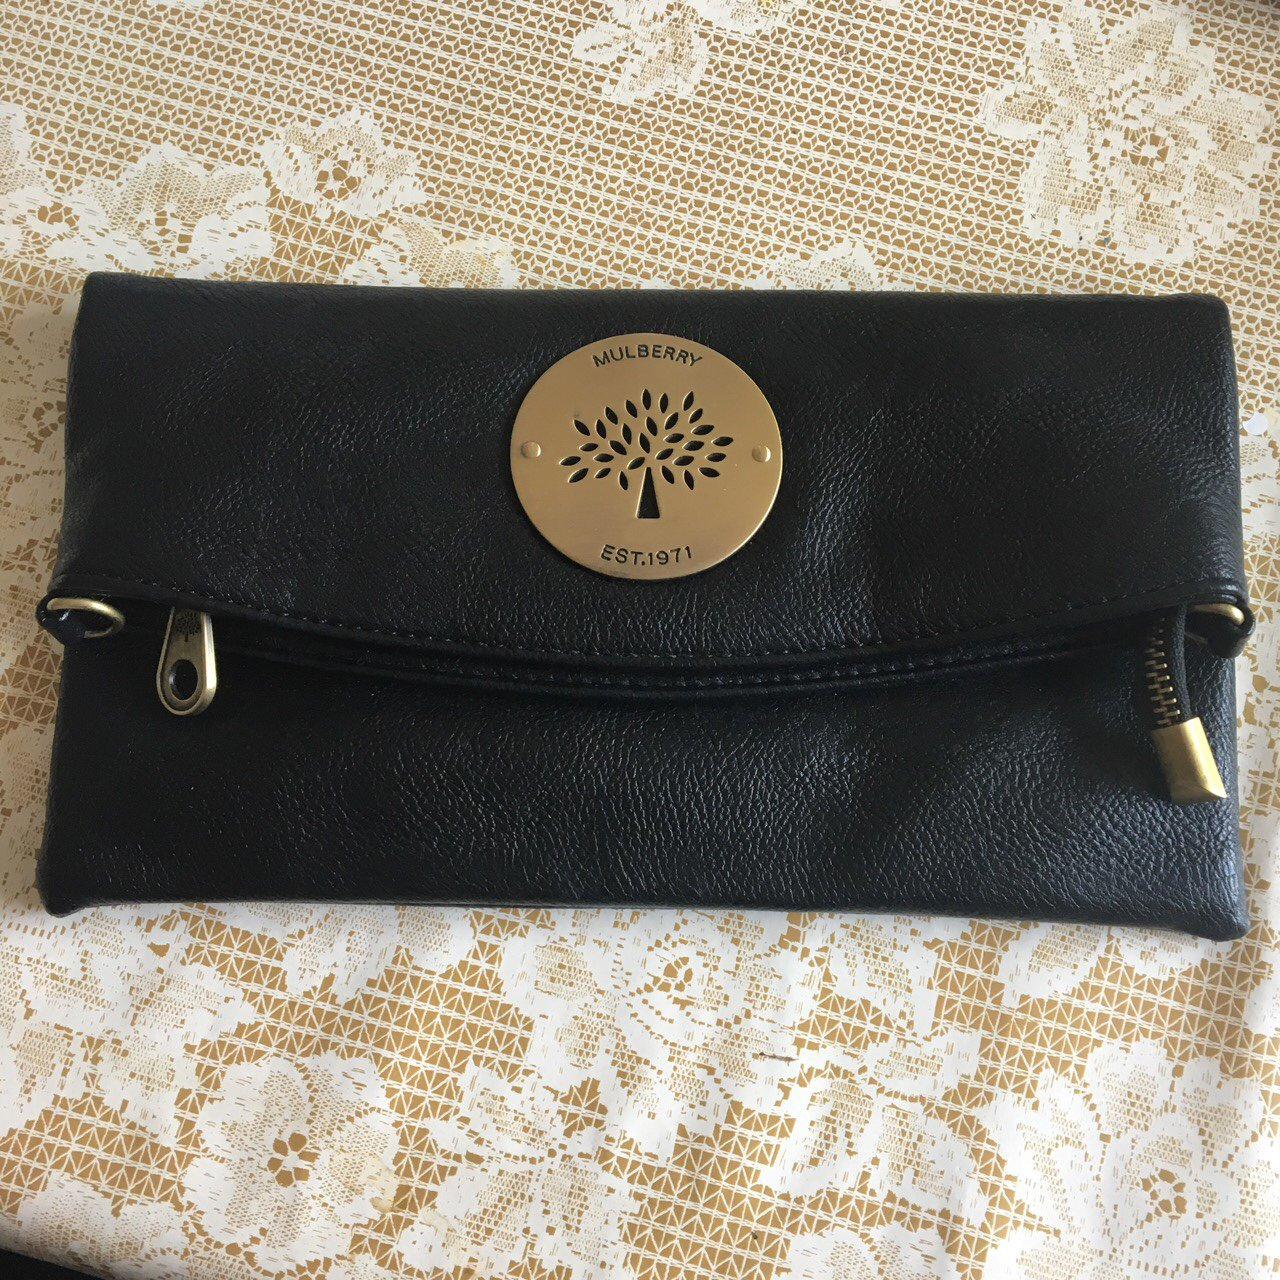 d4a4dbab1c05 Mulberry style fold over clutch bag🖤 most gorgeous bag with - Depop